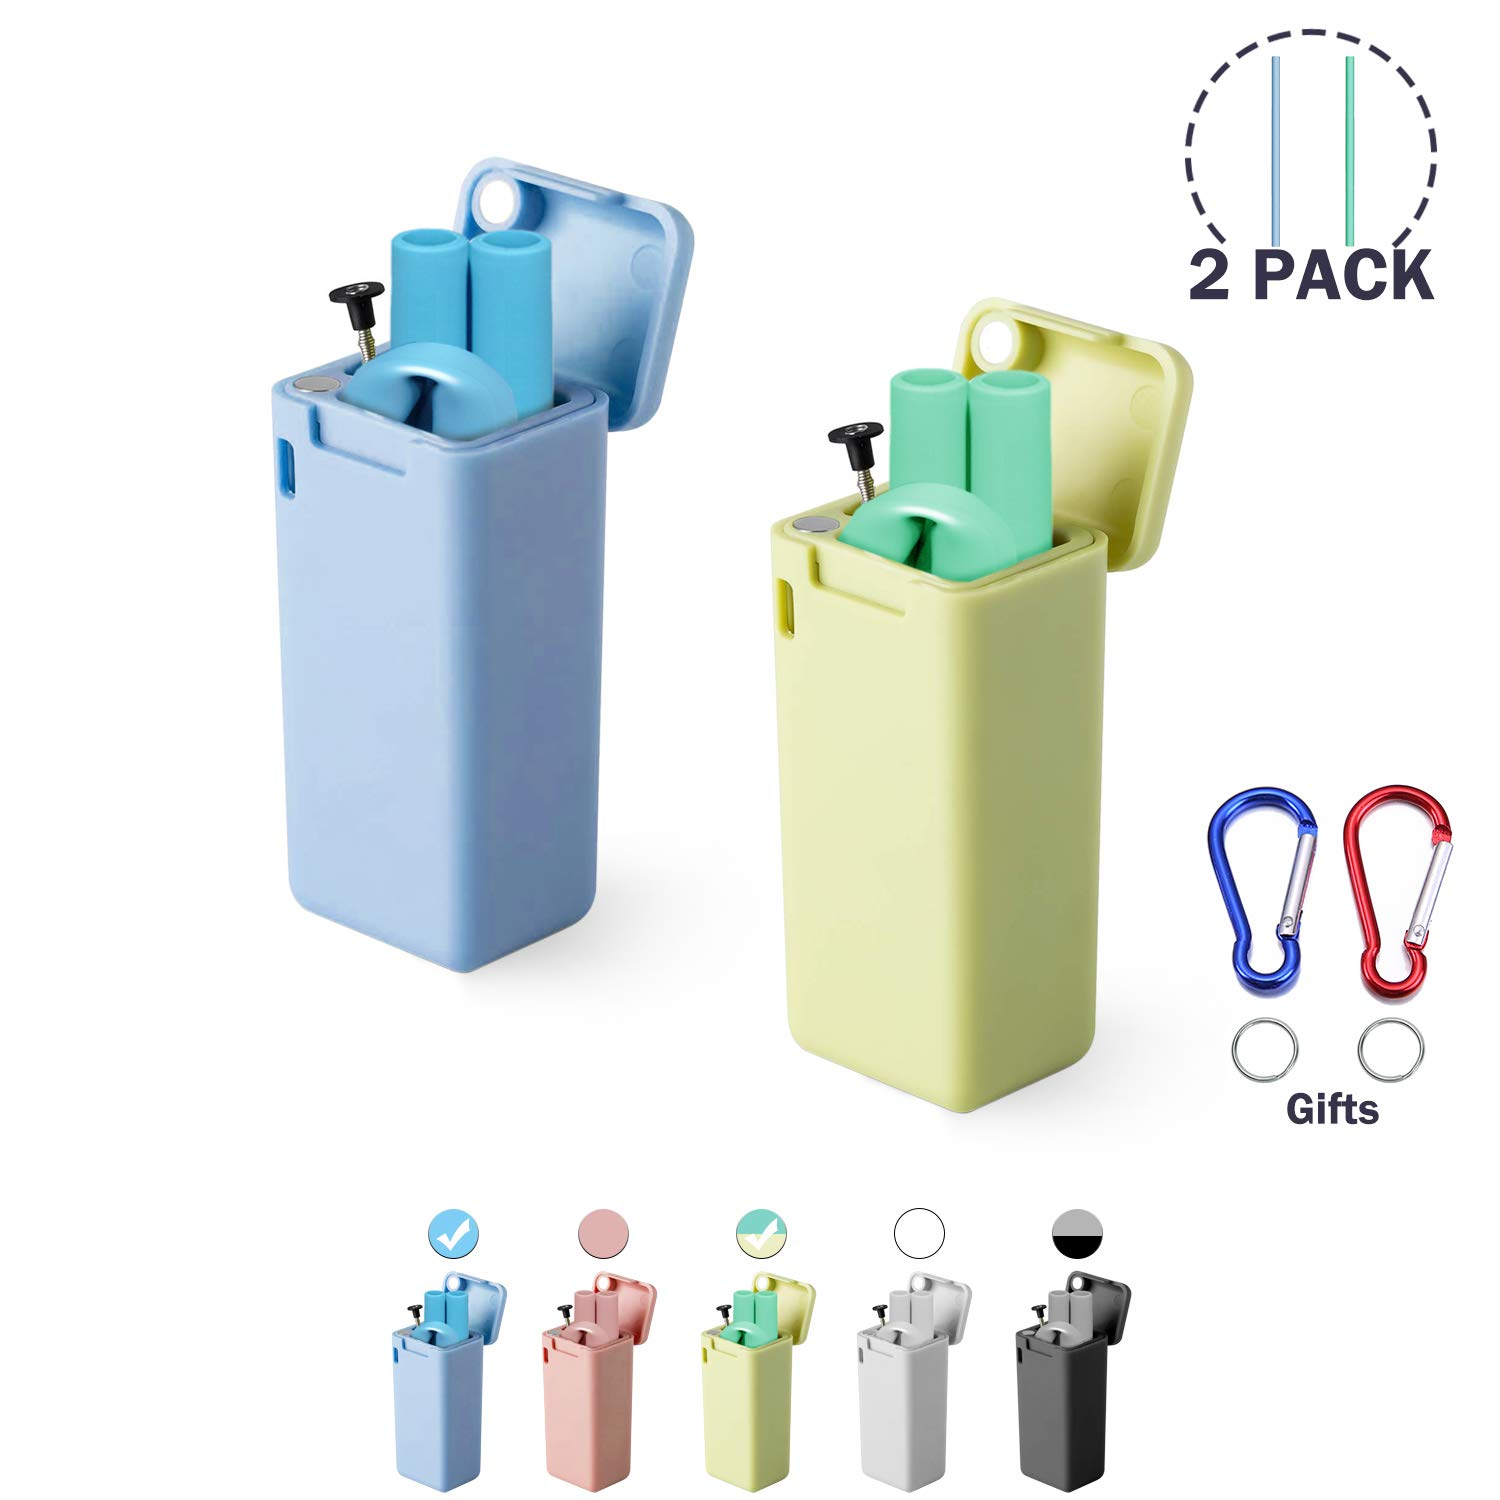 Blue/&Cyan Composed of Food-grade Silicone with Cleaning Brush /& Sturdy Carrying Case,For Gifts idea,Travel Extra Long 2 Pack Regular Size Reusable Drinking Collapsible Straws Party,Outdoor,Gym.